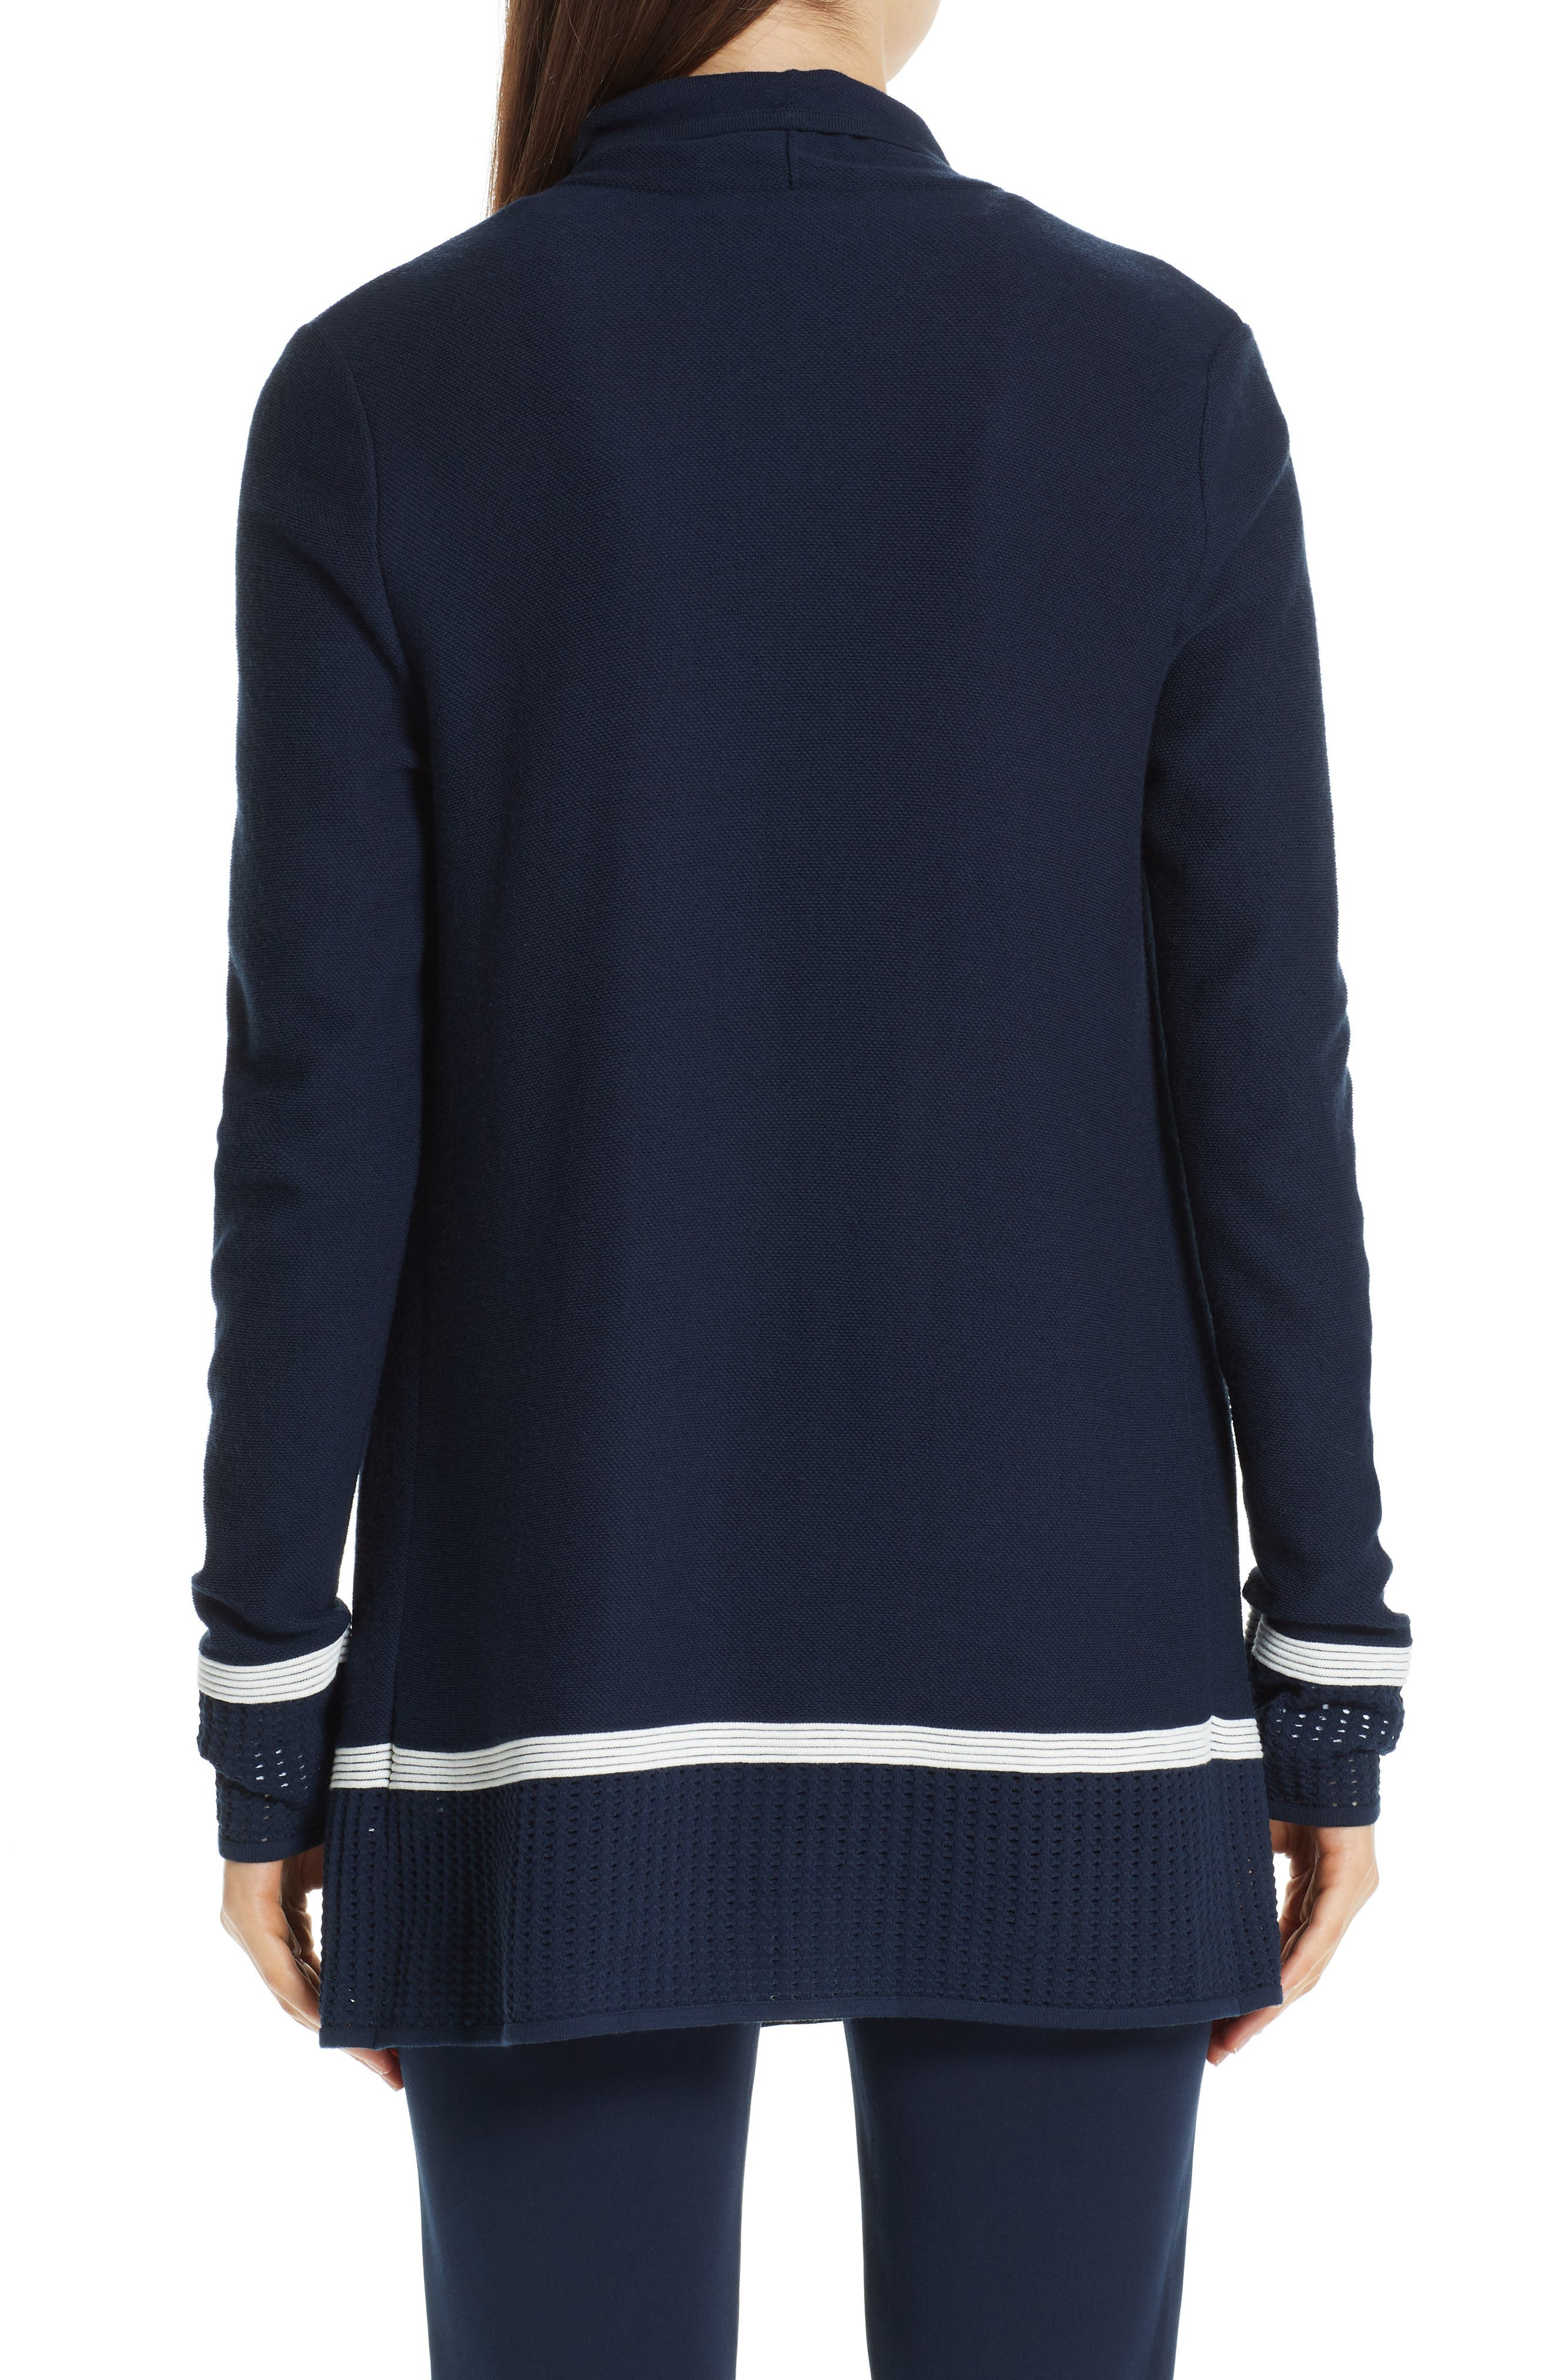 ST. JOHN COLLECTION,                             Mesh Trim Cardigan,                             Alternate thumbnail 2, color,                             NAVY/ CREAM